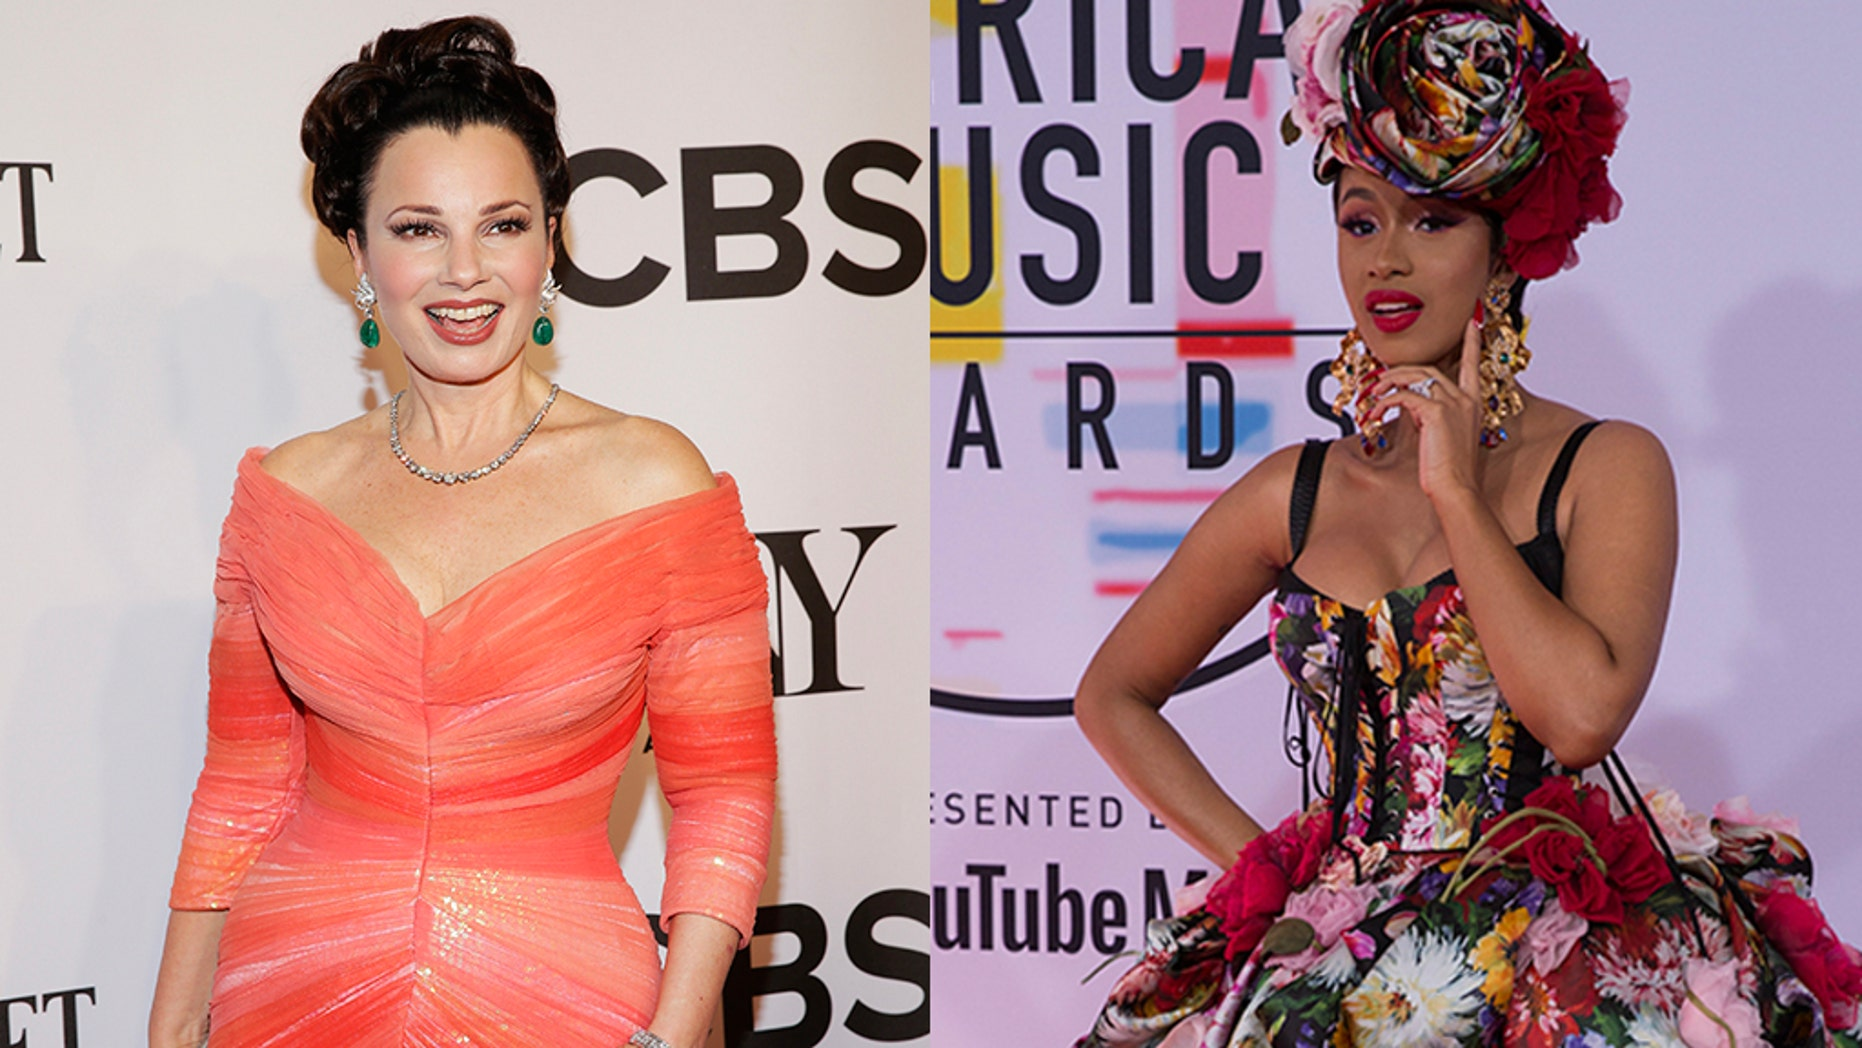 """The Nanny"" star Fran Drescher (left) and rapper Cardi B (right)."